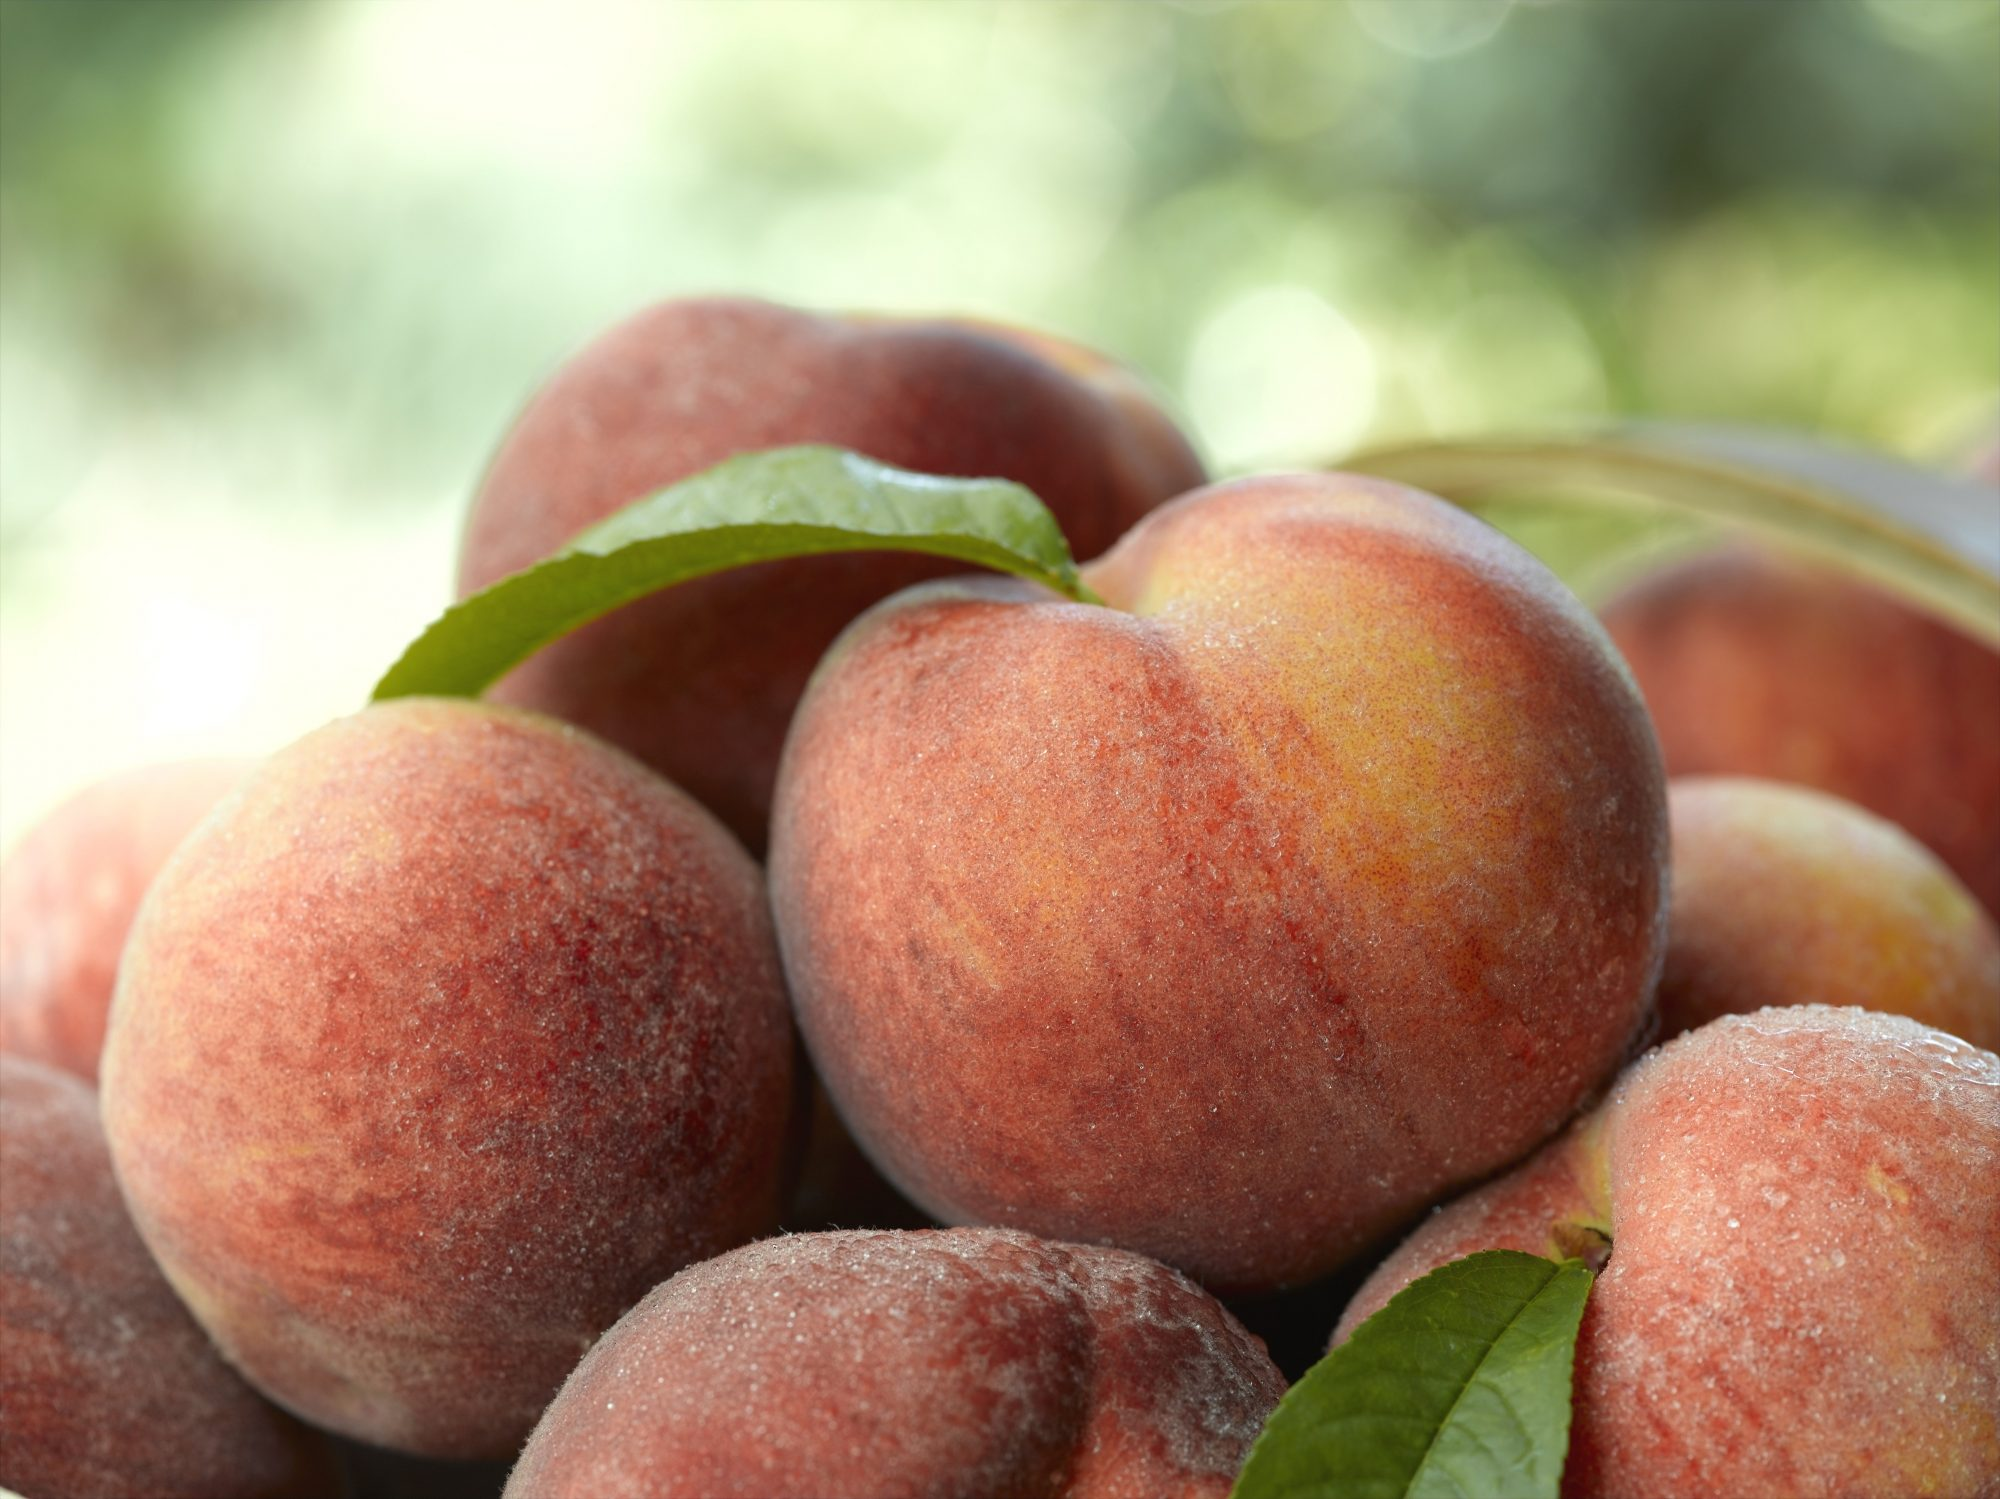 Georgia Farmers Lost 80% of Their Peach Crop This Year